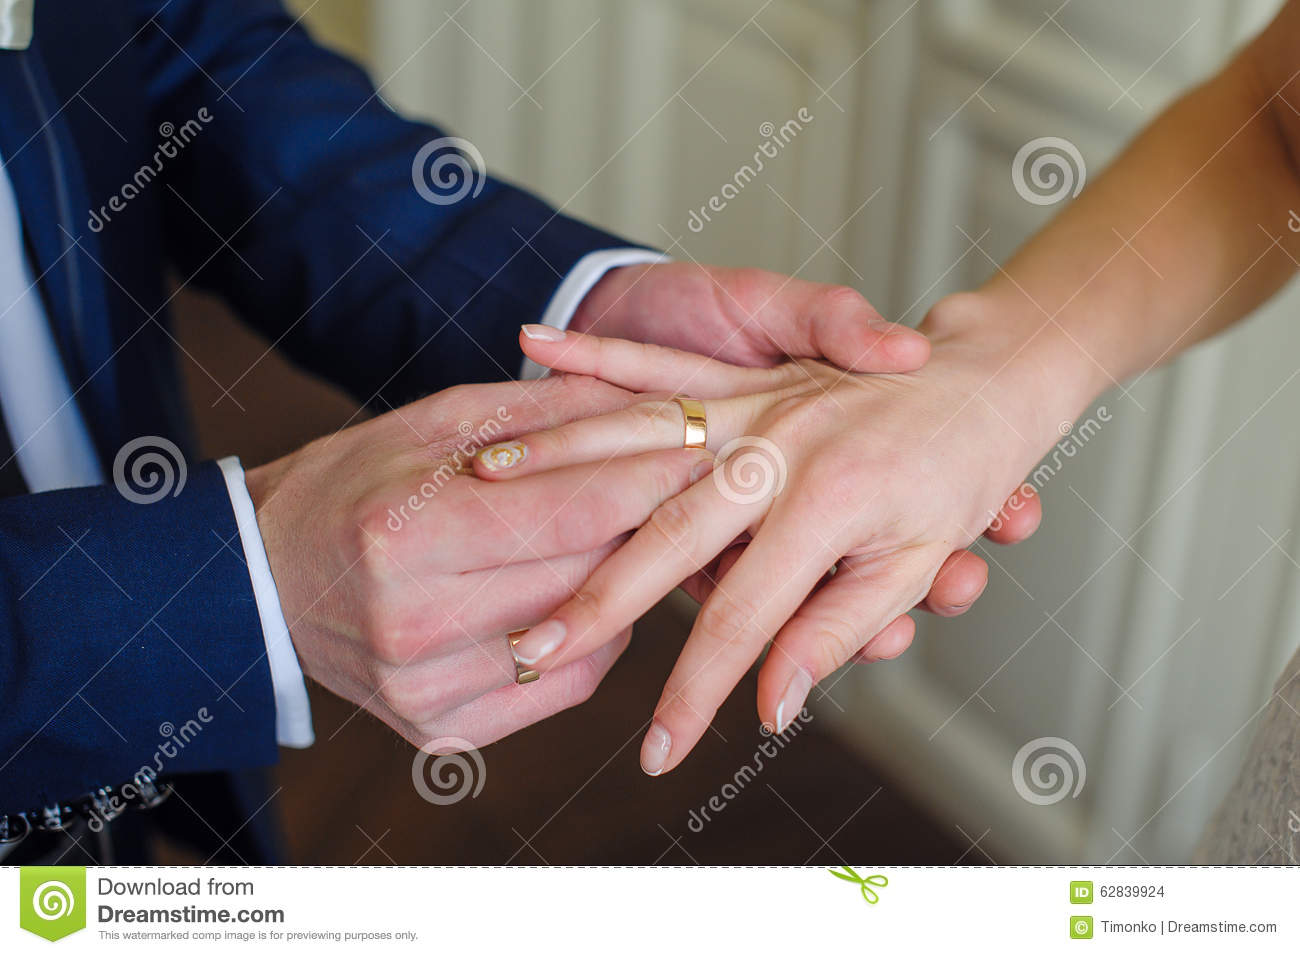 Groom Wears Bride A Gold Ring On Her Finger Stock Photo - Image of ...